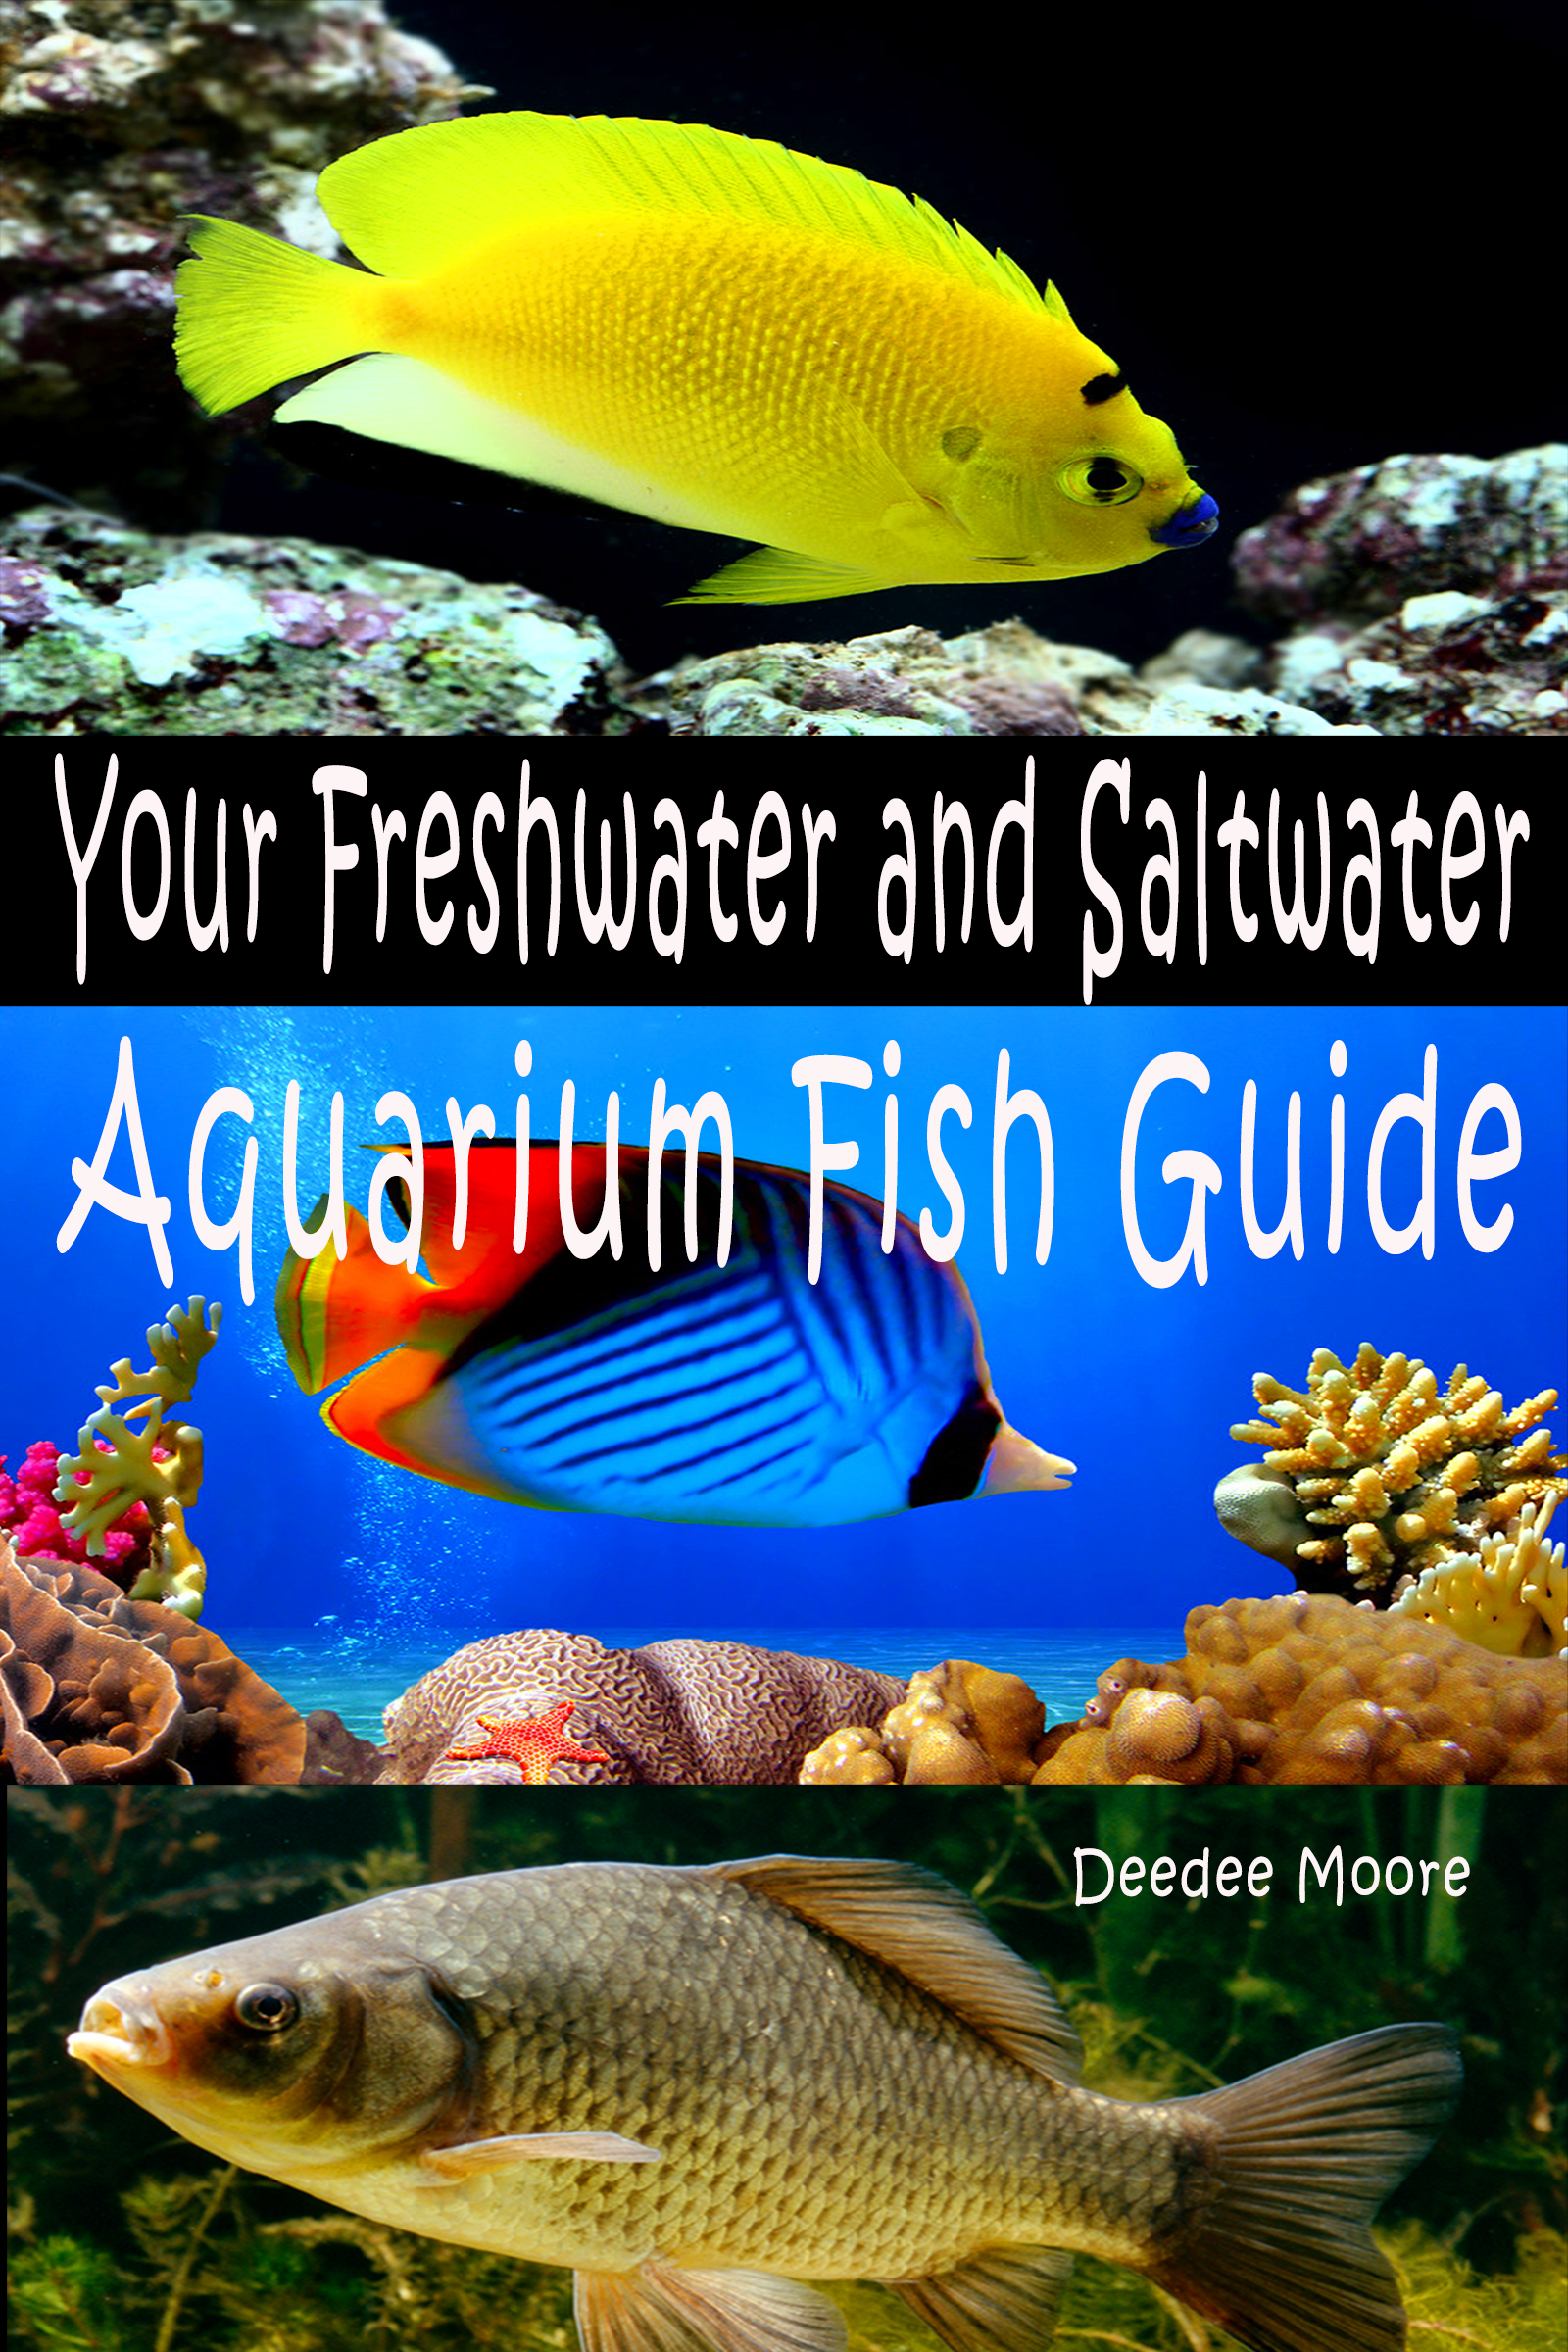 Freshwater aquarium fish guide - Your Freshwater And Saltwater Aquarium Fish Guide